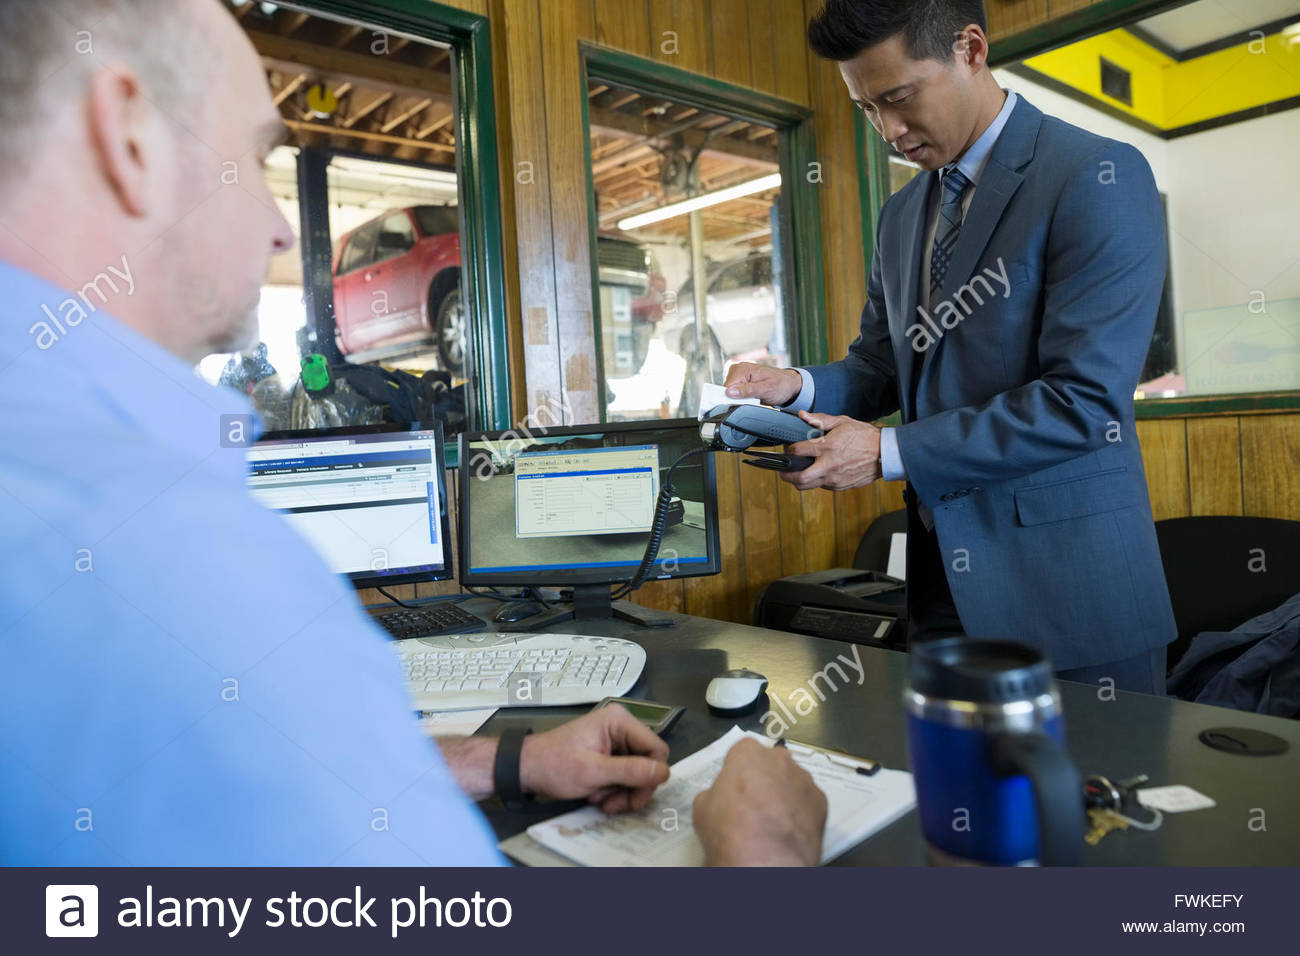 Customer using credit card reader auto shop office Stock Photo